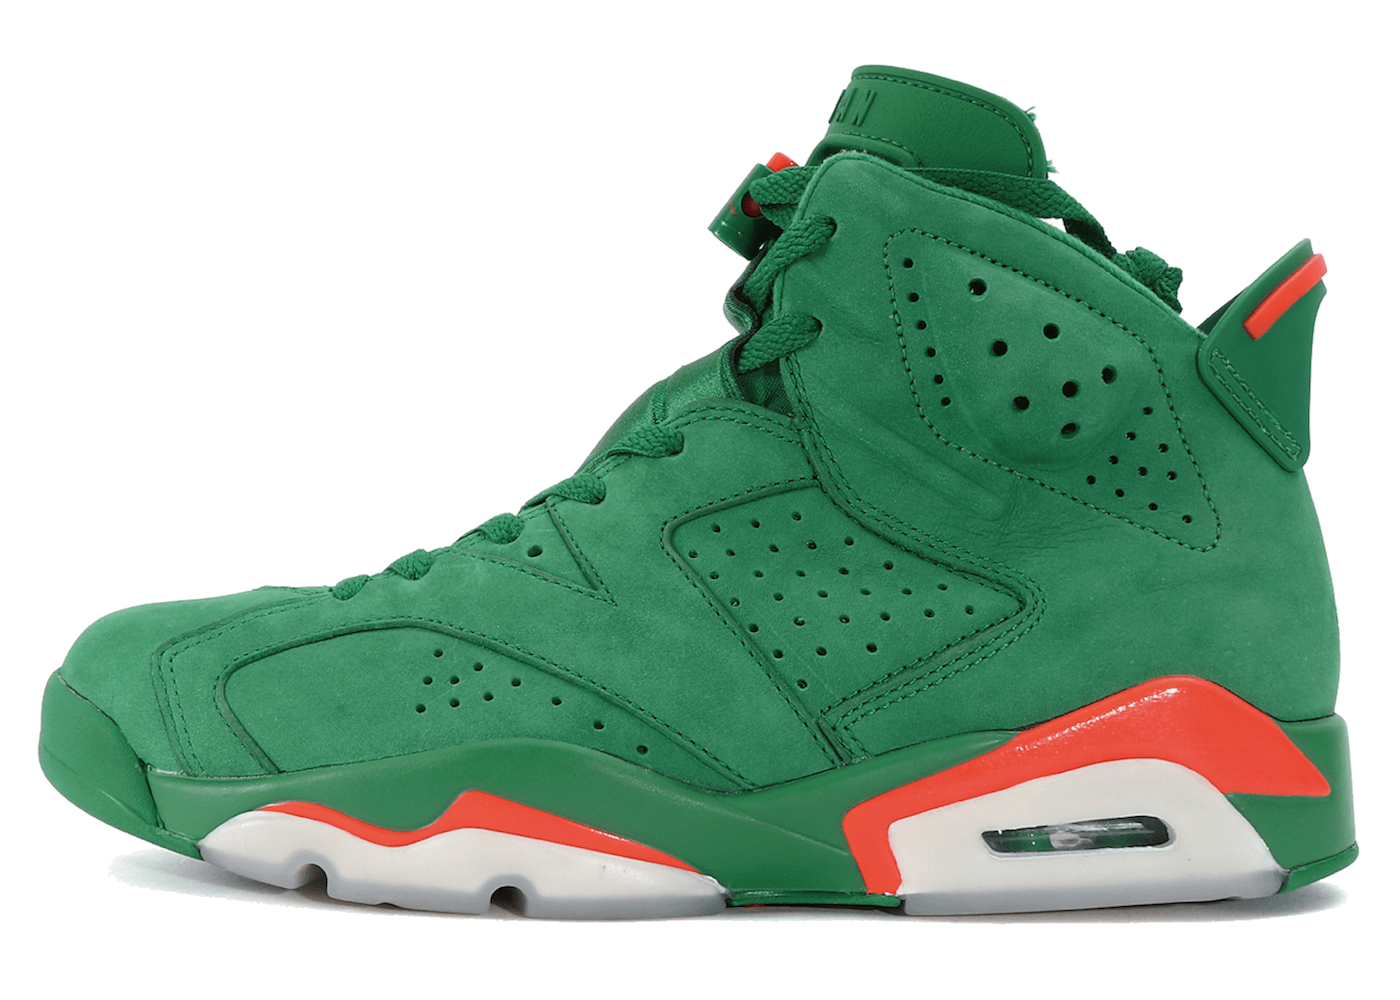 Jordan 6 Retro Gatorade Greenの写真